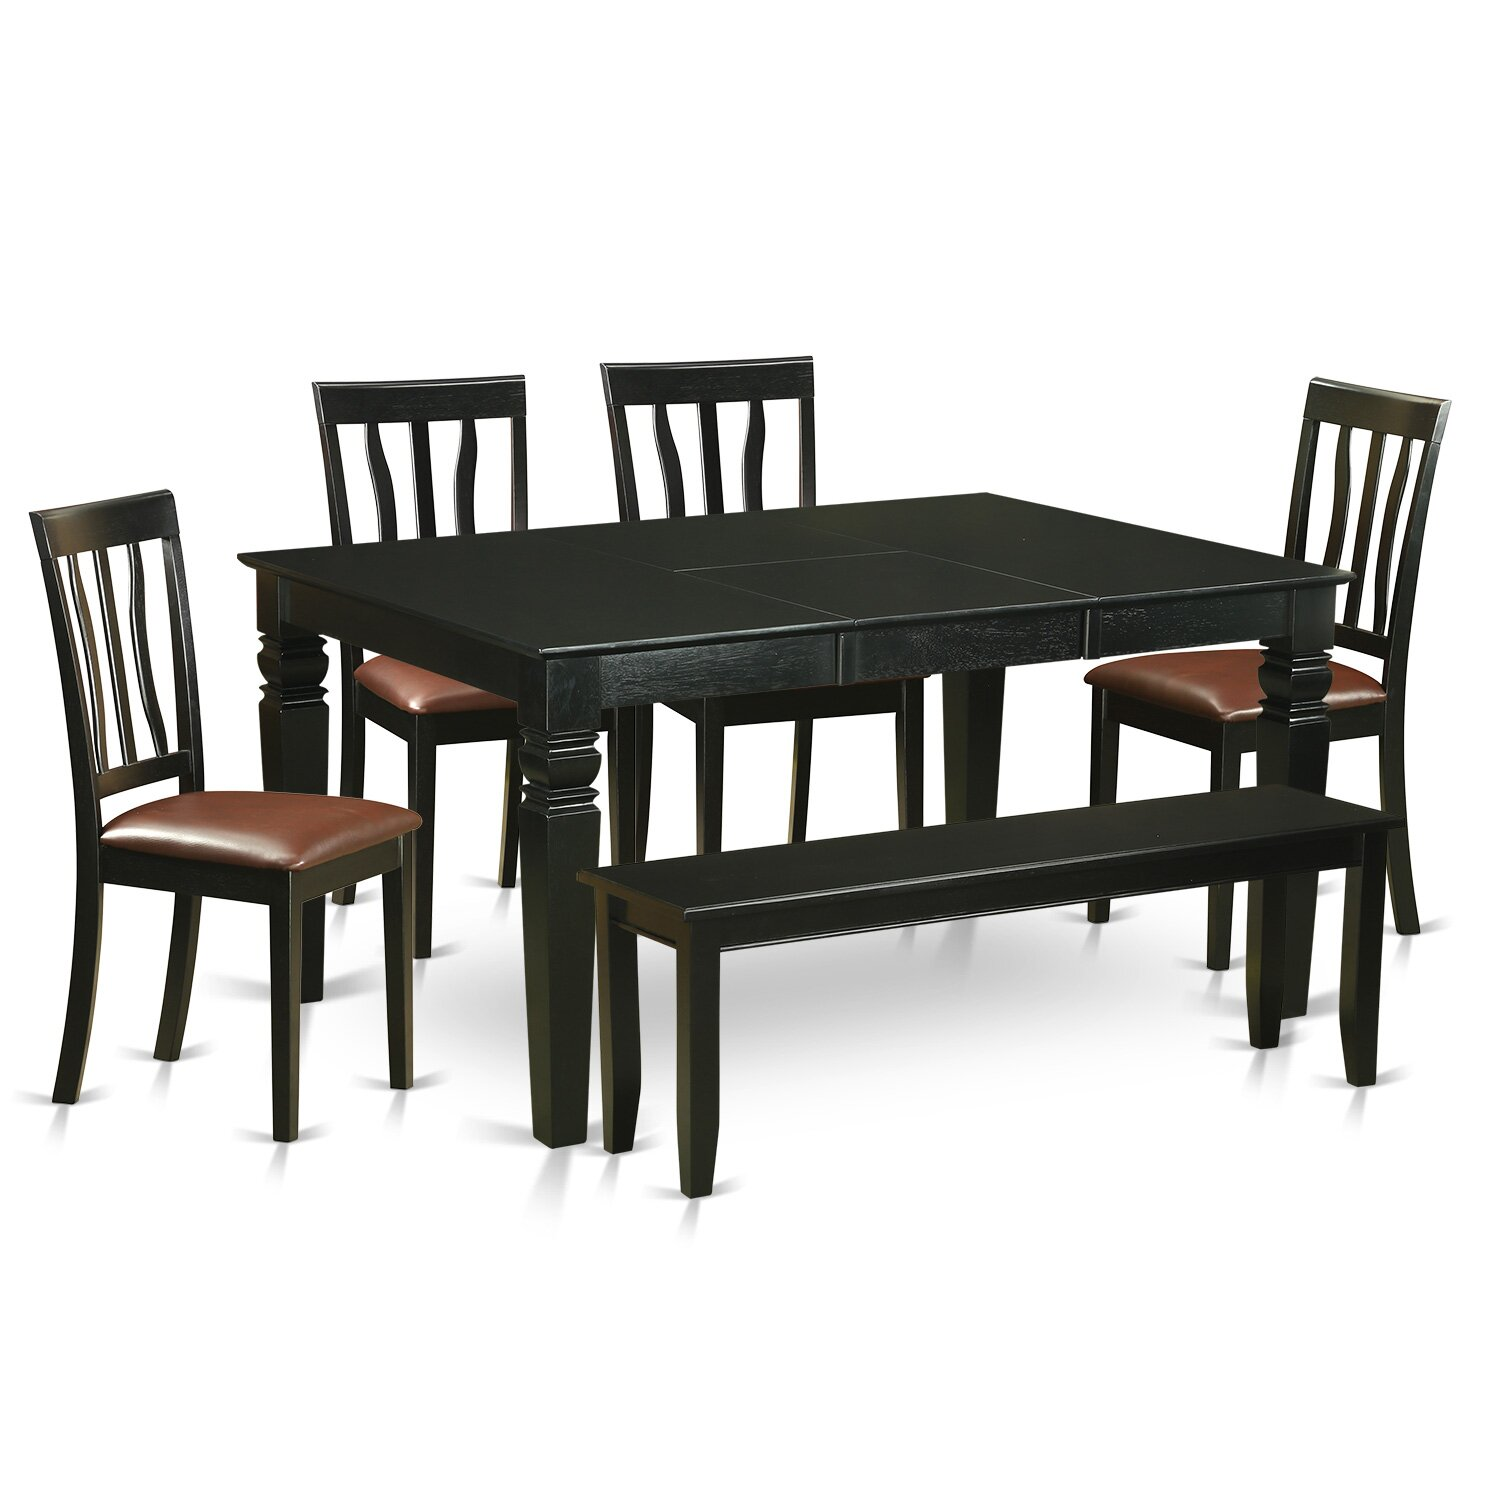 Wooden importers weston 6 piece dining set wayfair - Pc dining room set ...